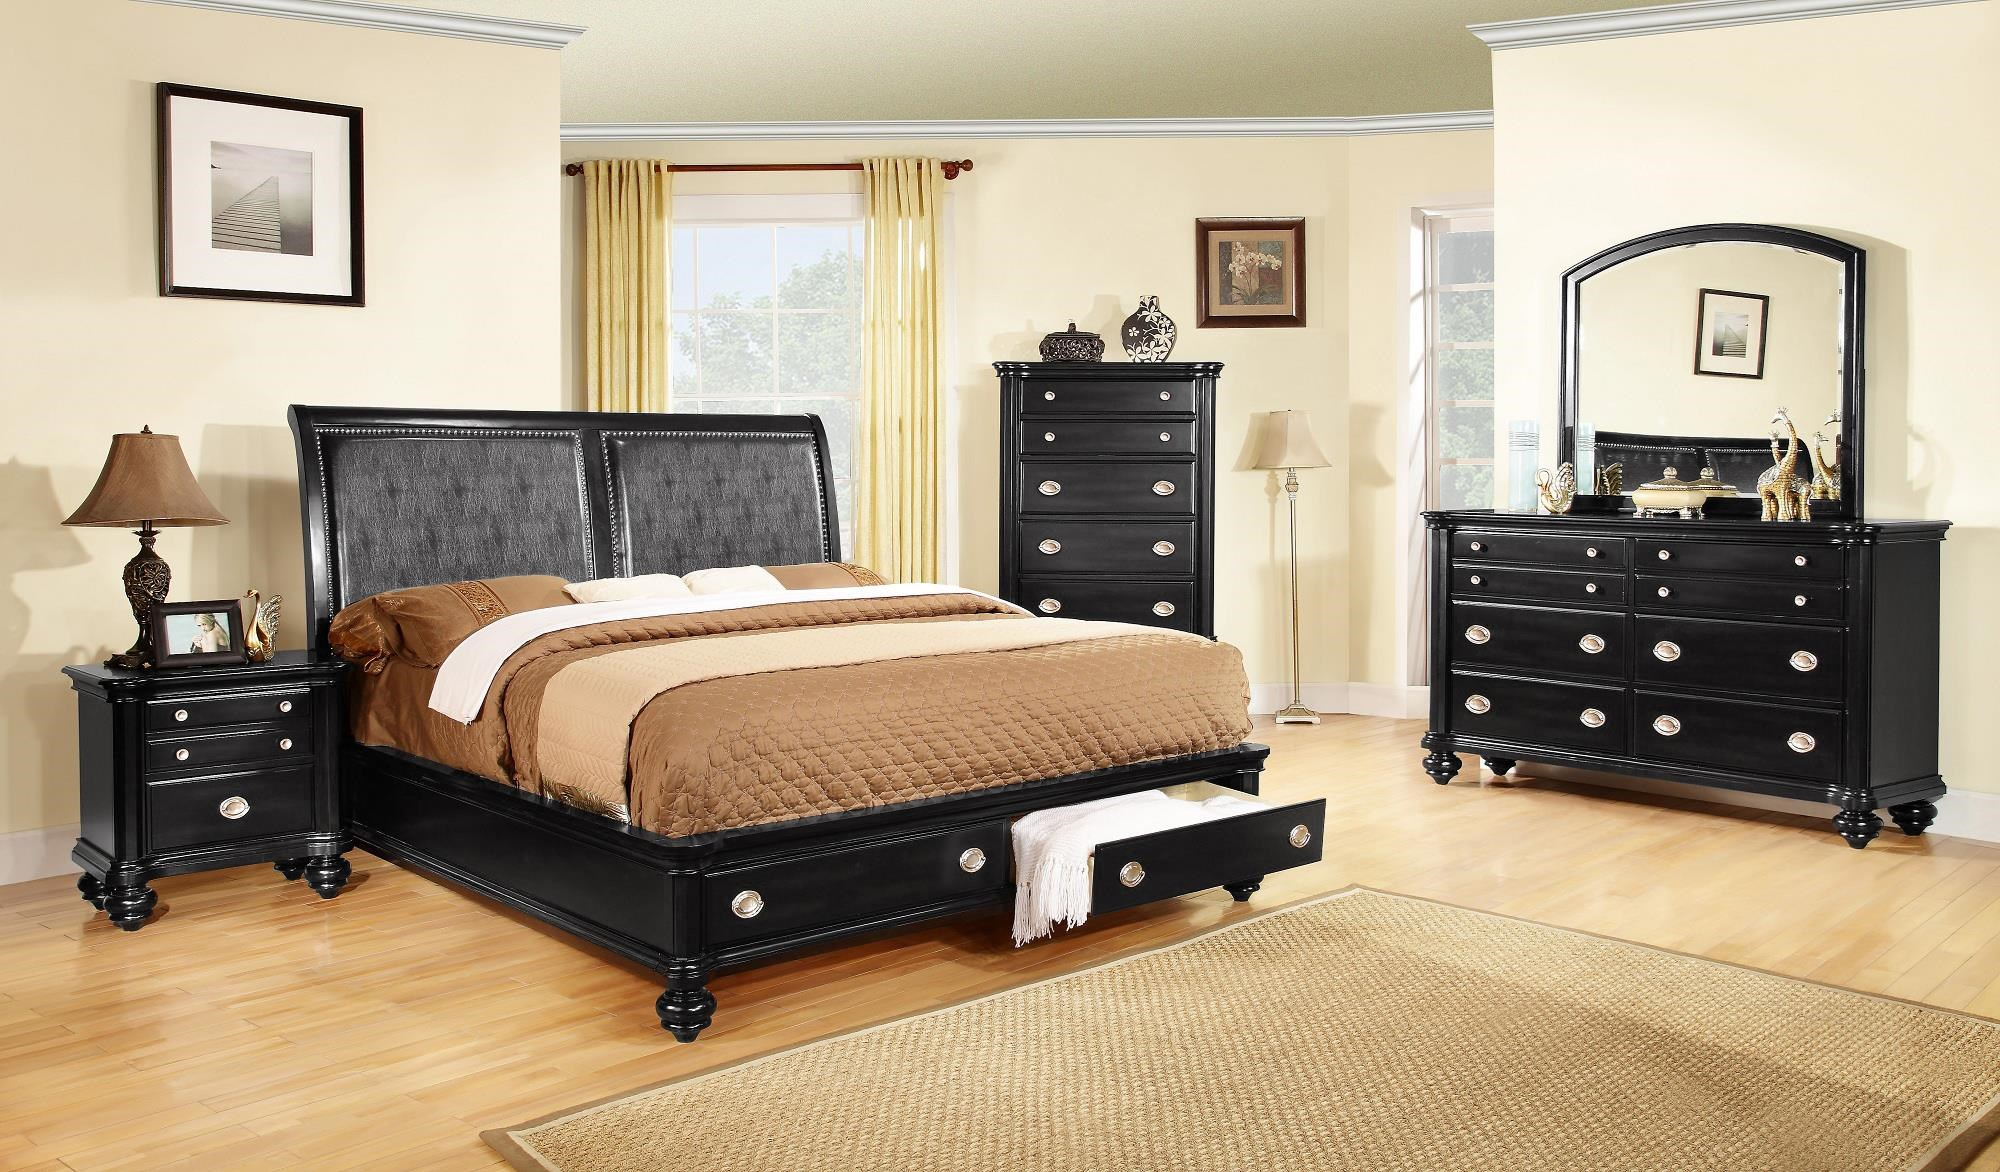 Lifestyle C2175 Queen 6-Piece Bedroom Group | Royal Furniture ...